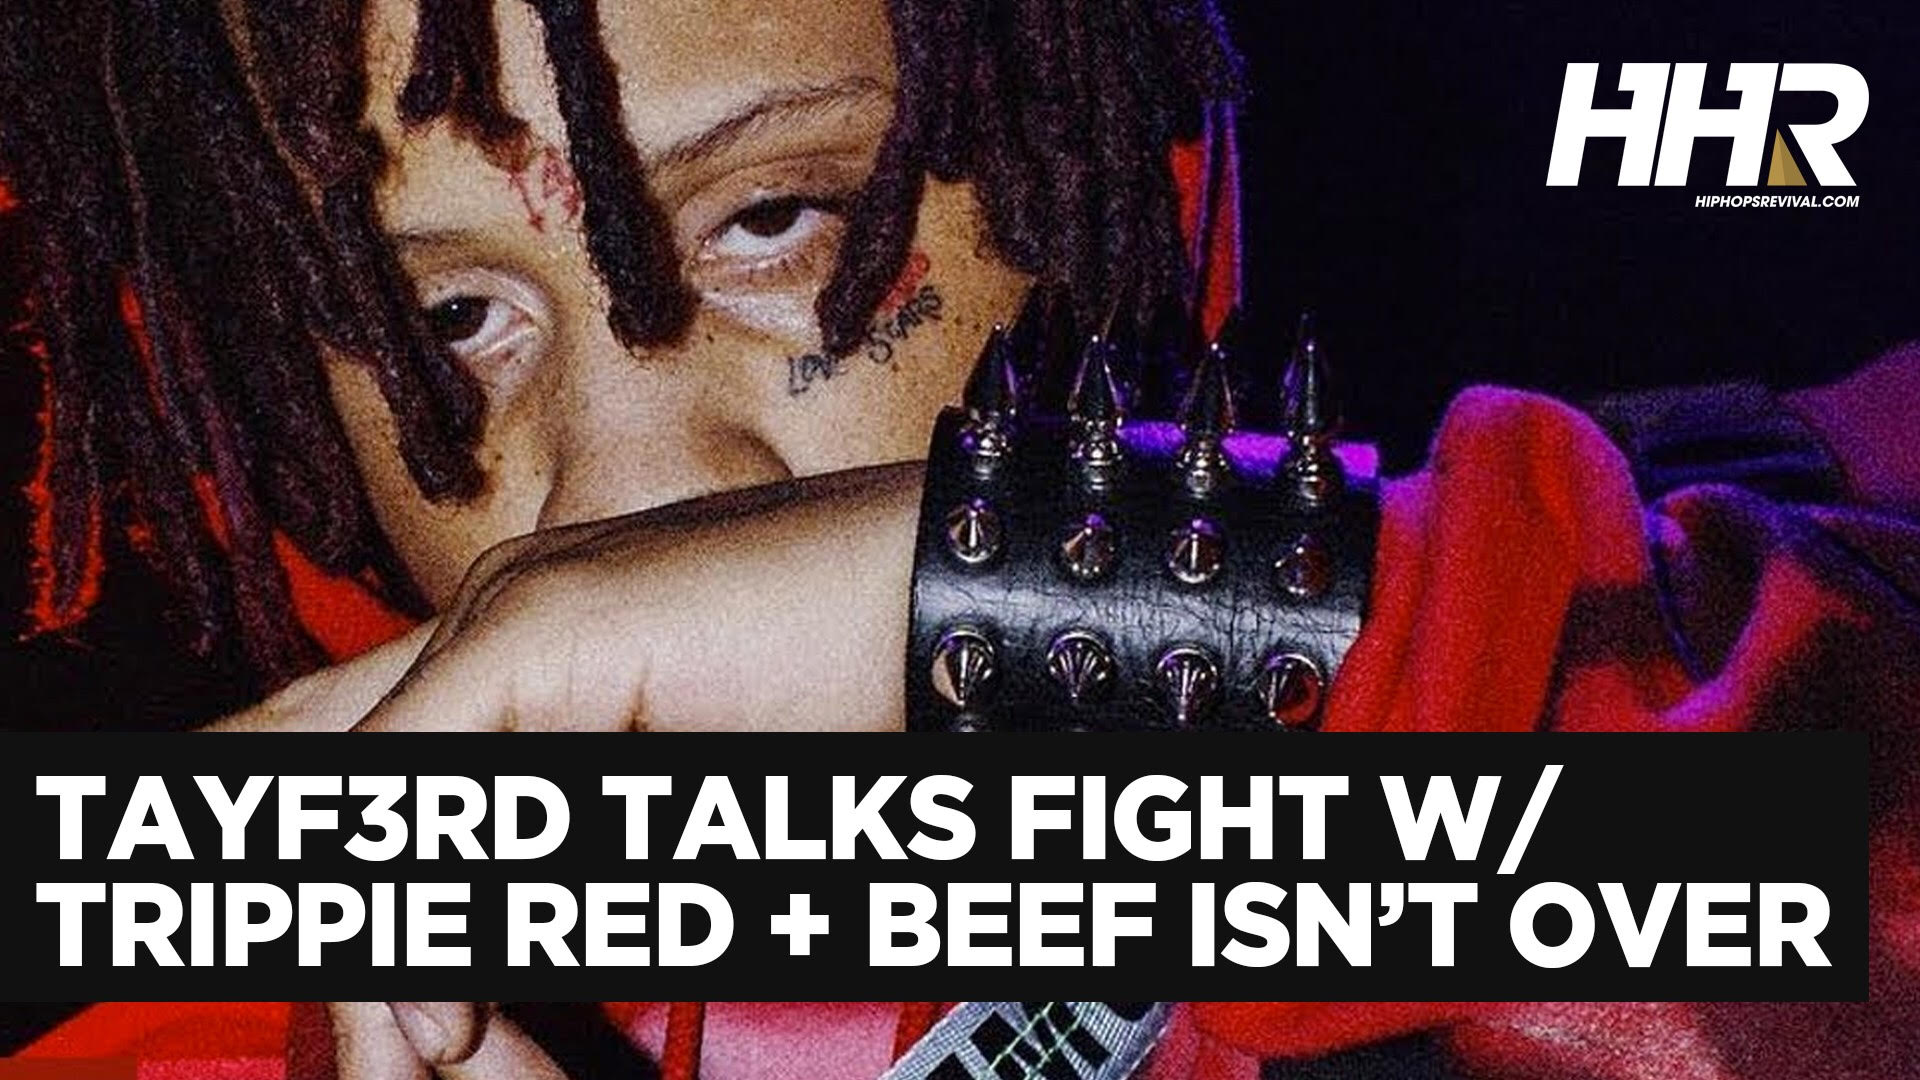 TayF3rd Details Fight With Trippie Redd | @trippieredd @TAYF3RD @hiphopsrevival